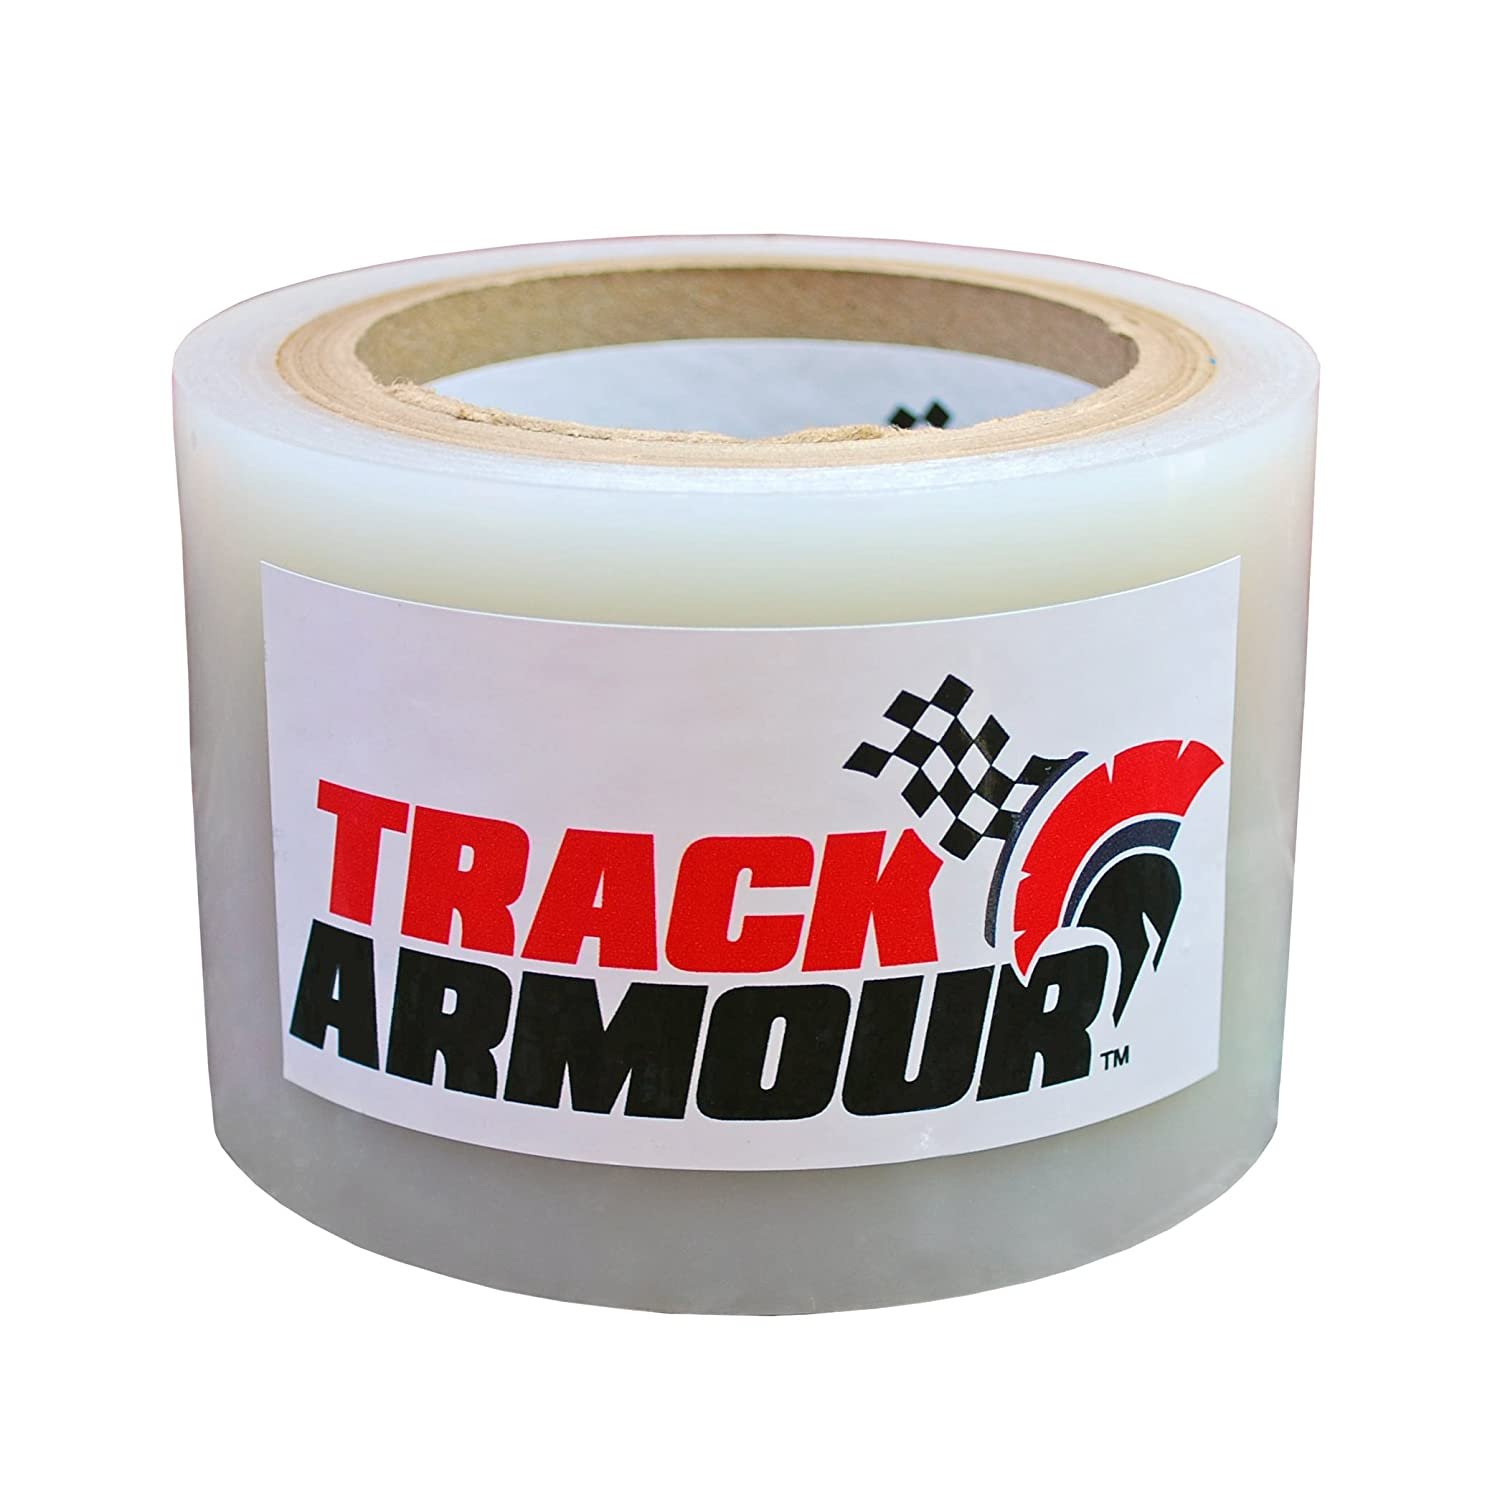 TrackArmour TA3X100M - 3' x 100' - Universal Temporary Track Day Paint Protection Clear Adhesive Film for Motorcycle